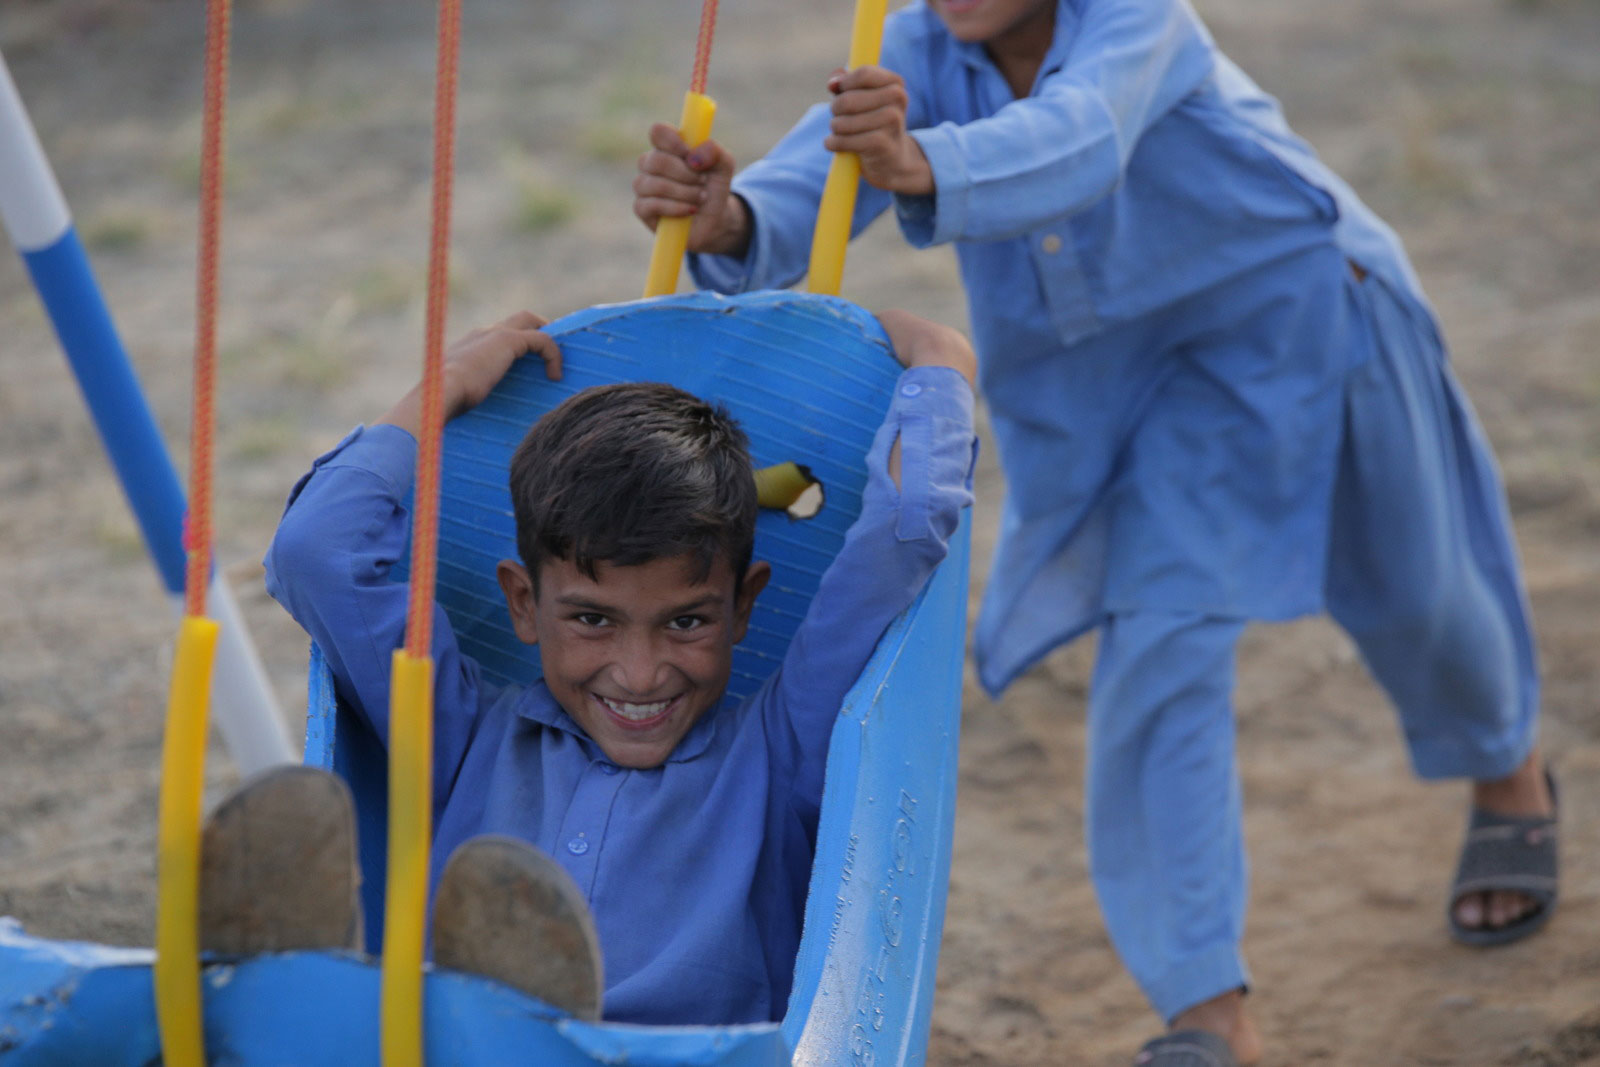 c_Dynimax-Intermedia_HI__Children-play-on-the-first-ever-inclusive-playground-built-by-HI-in-Pakistan.jpg